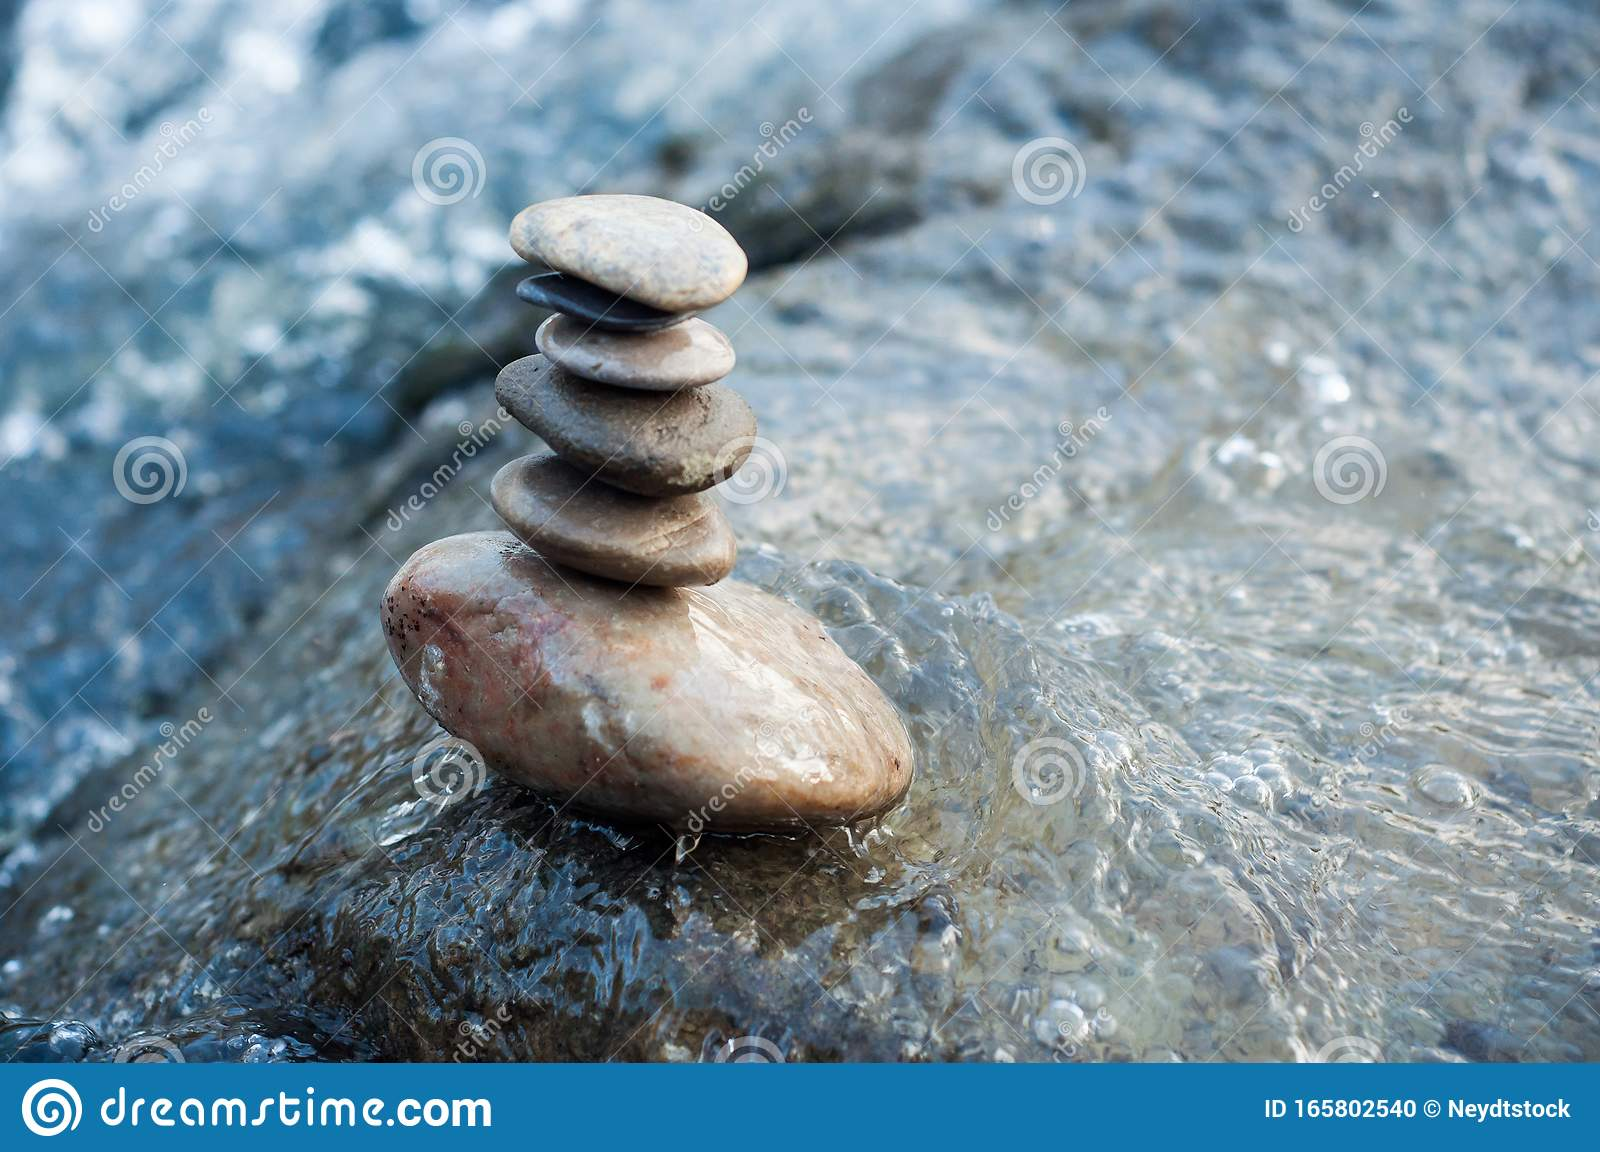 Stone Balance On Rocks In The River Stock Photo Image Of